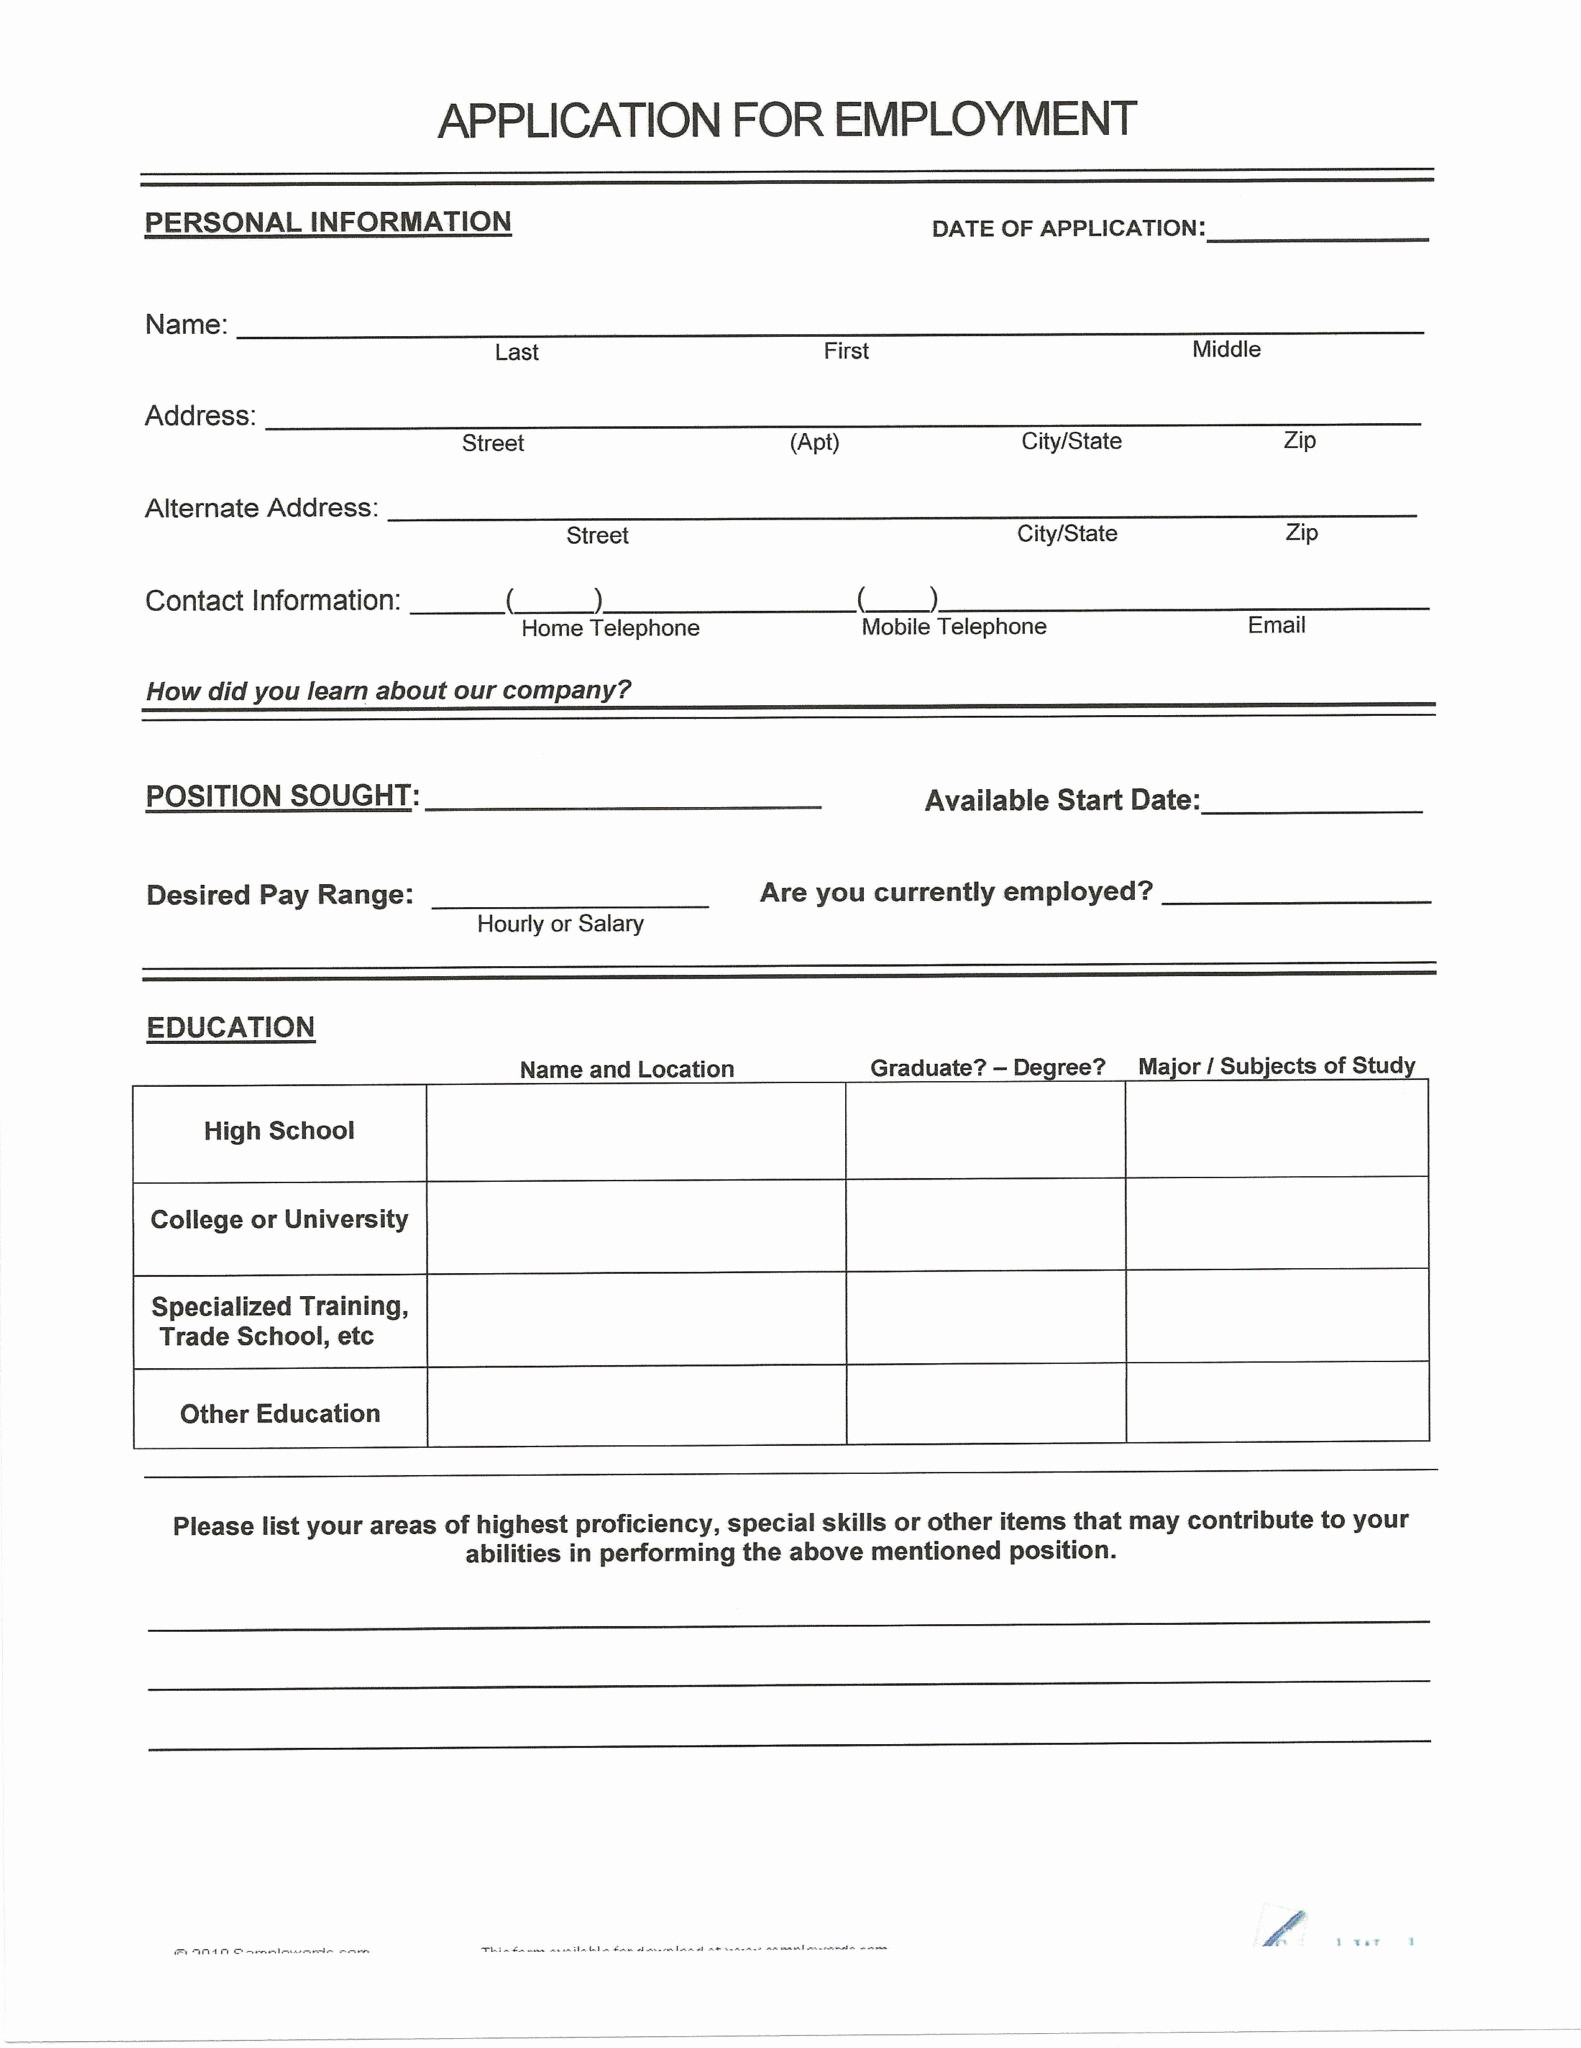 Resume forms to Fill Out Fresh Free Resumes to Fill Out and Print